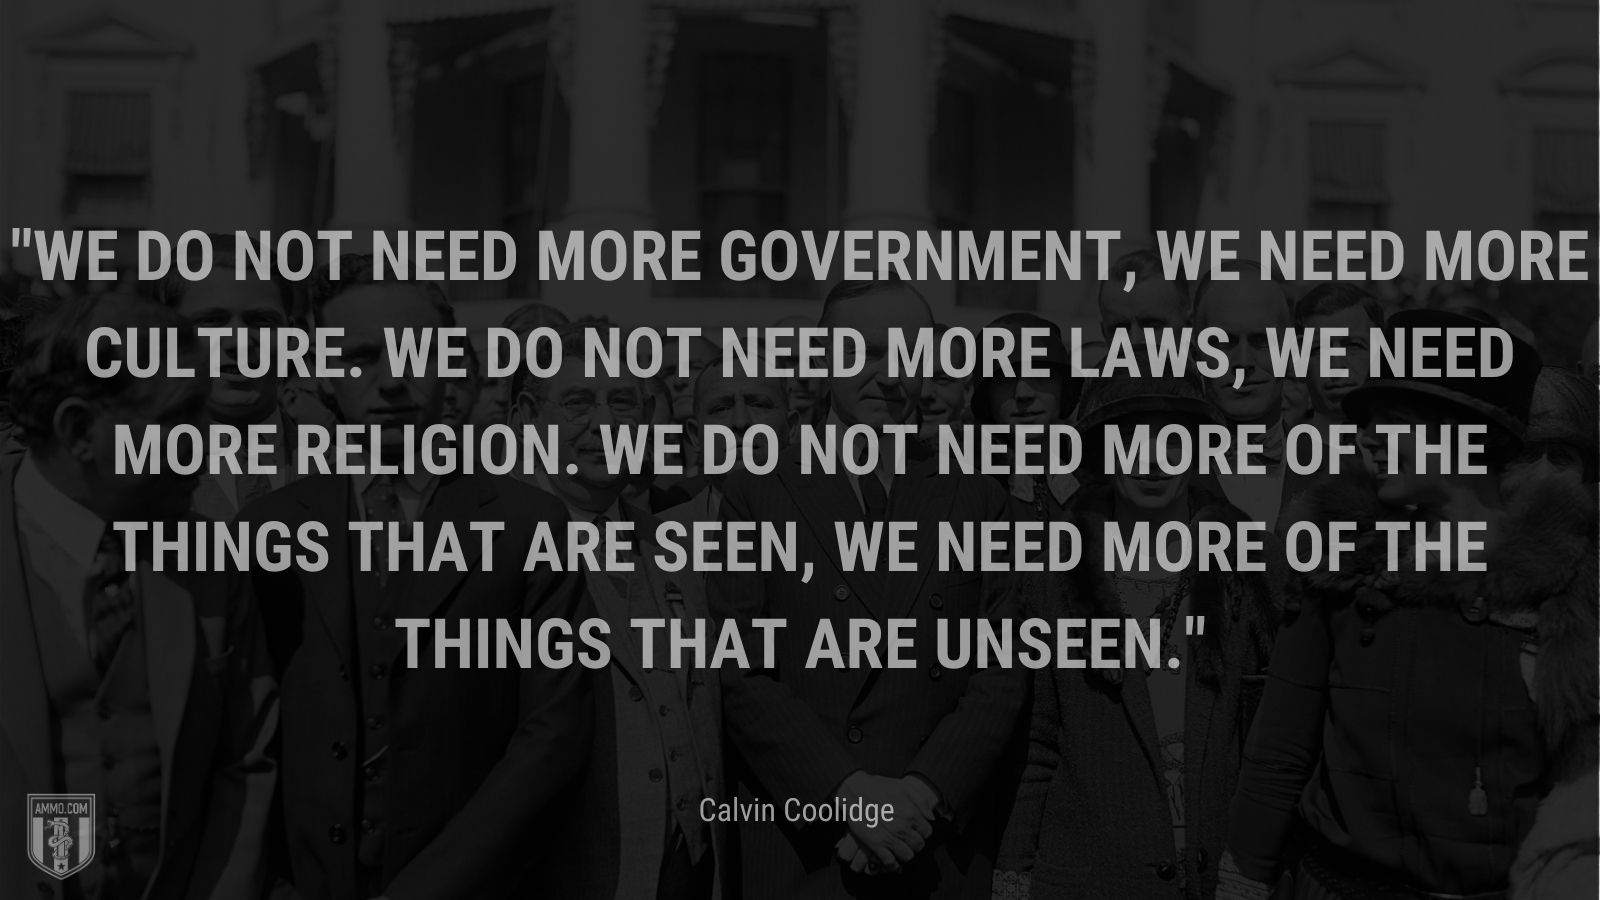 """""""We do not need more government, we need more culture. We do not need more laws, we need more religion. We do not need more of the things that are seen, we need more of the things that are unseen."""" - Calvin Coolidge"""